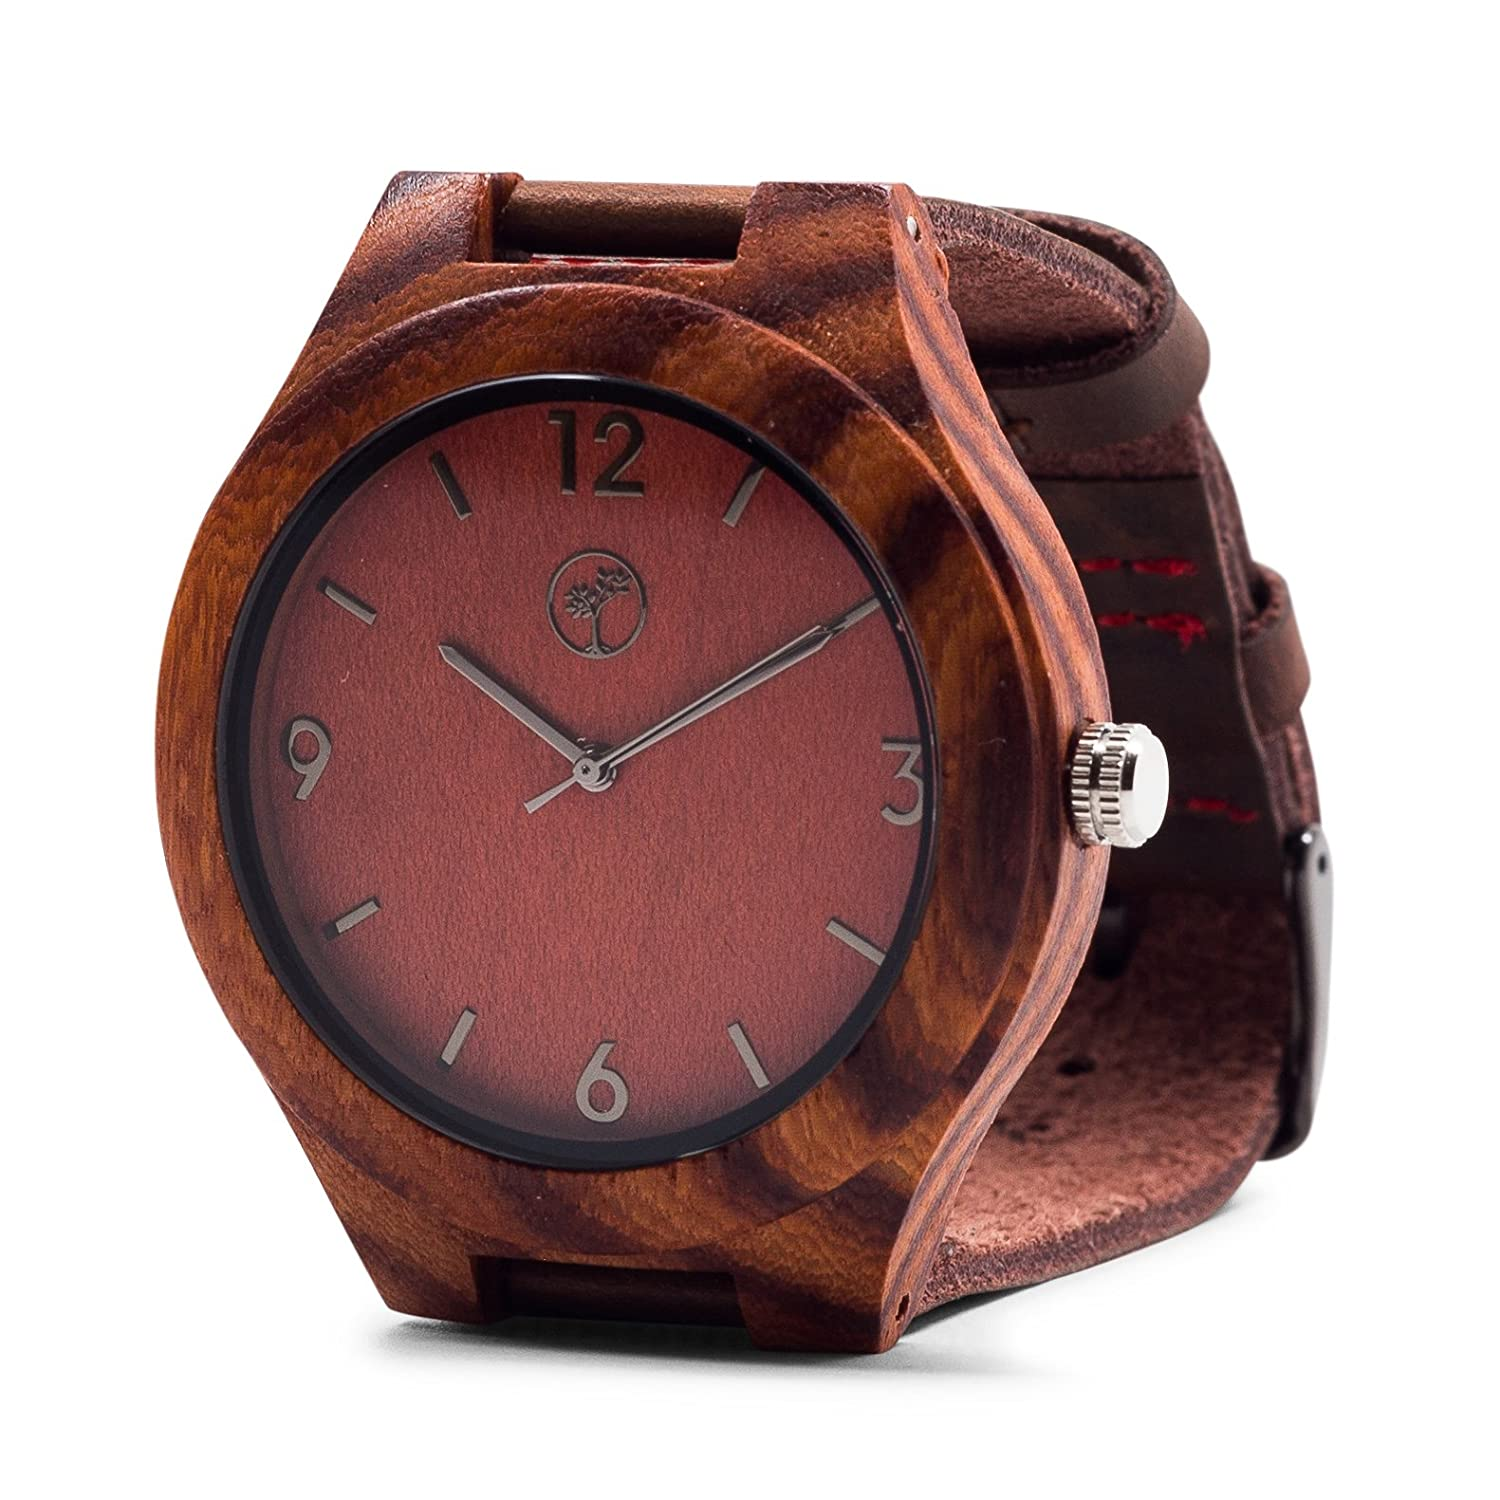 joycoast products watches red sandalwood wooden watch